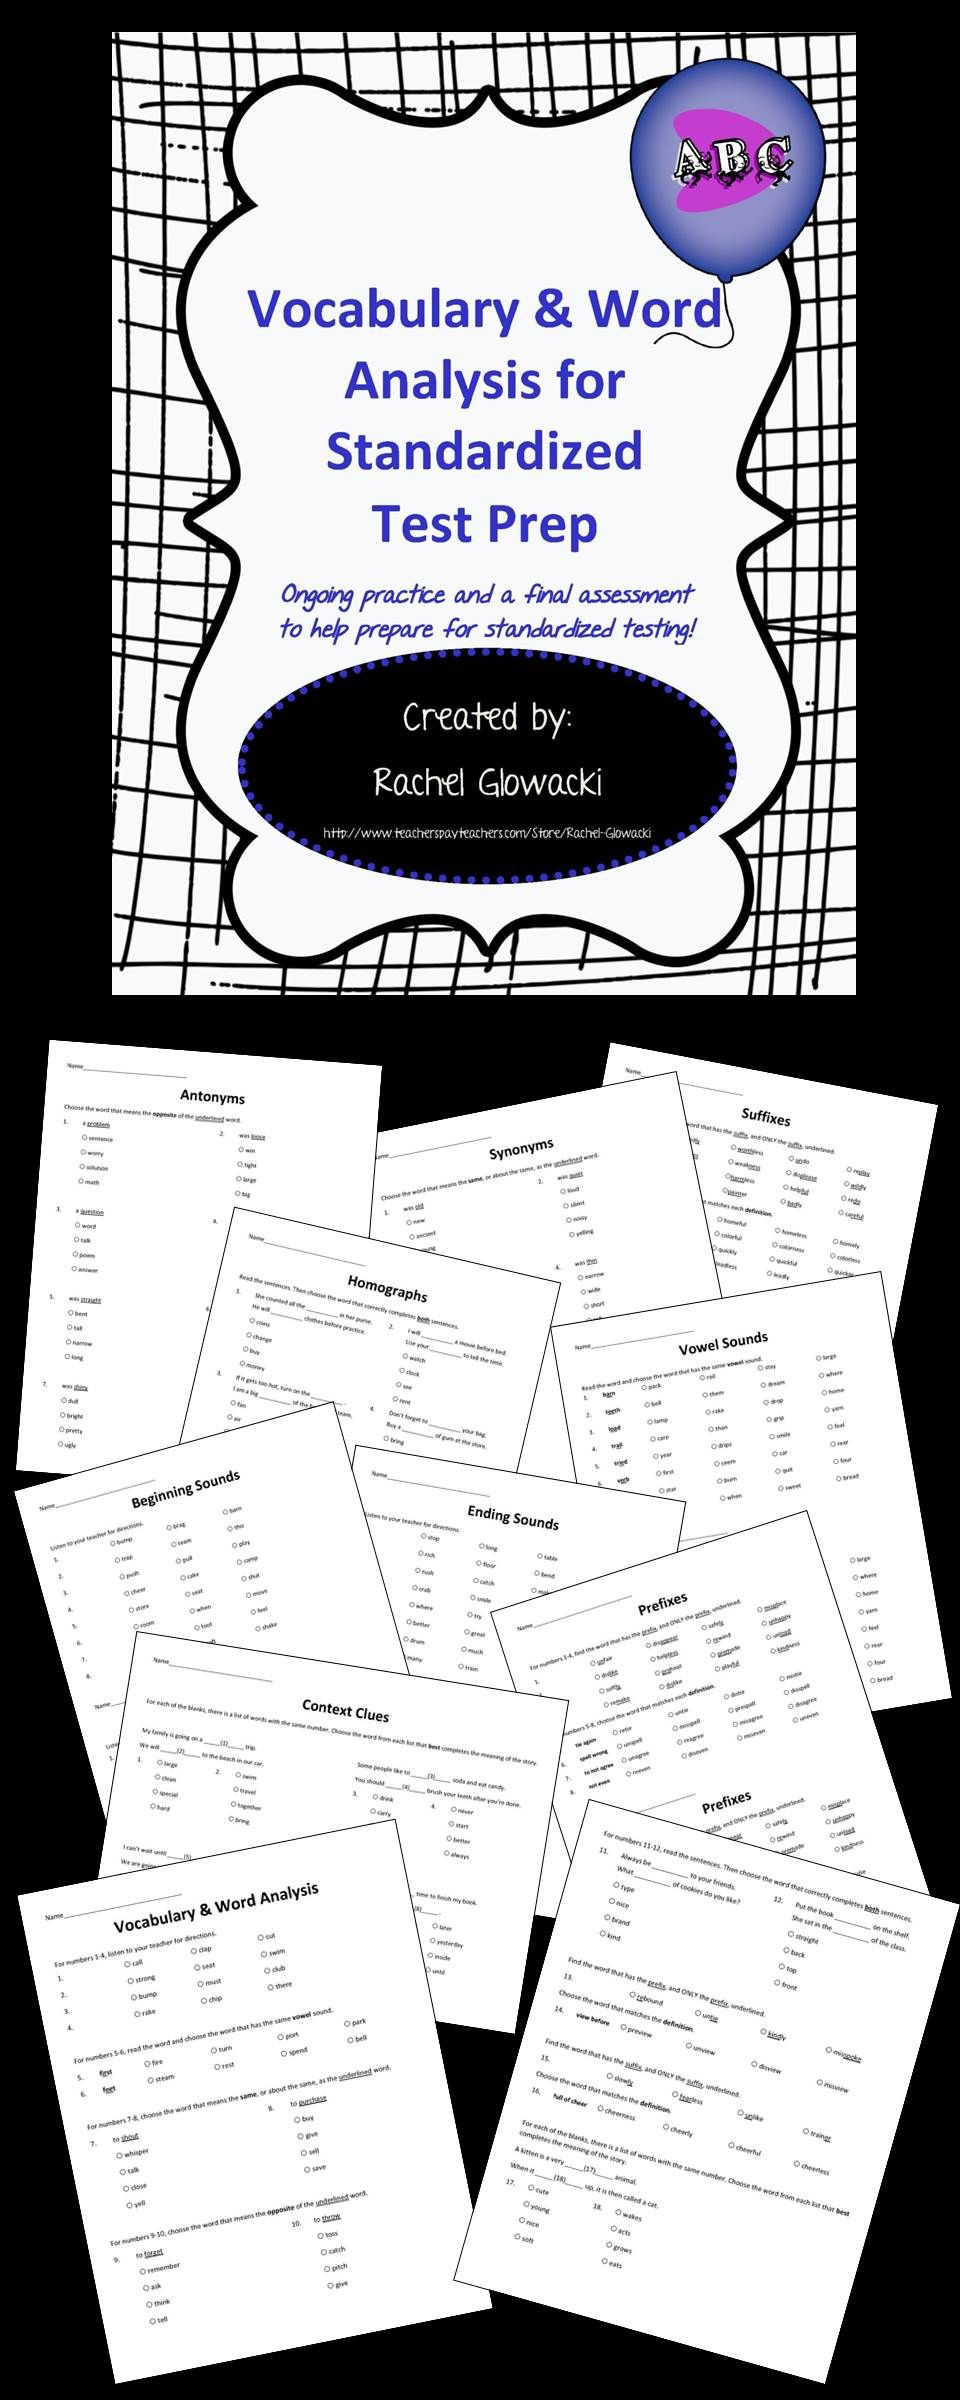 Iread 3 Practice Worksheets Vocabulary & Word Analysis for Standardized Test Prep